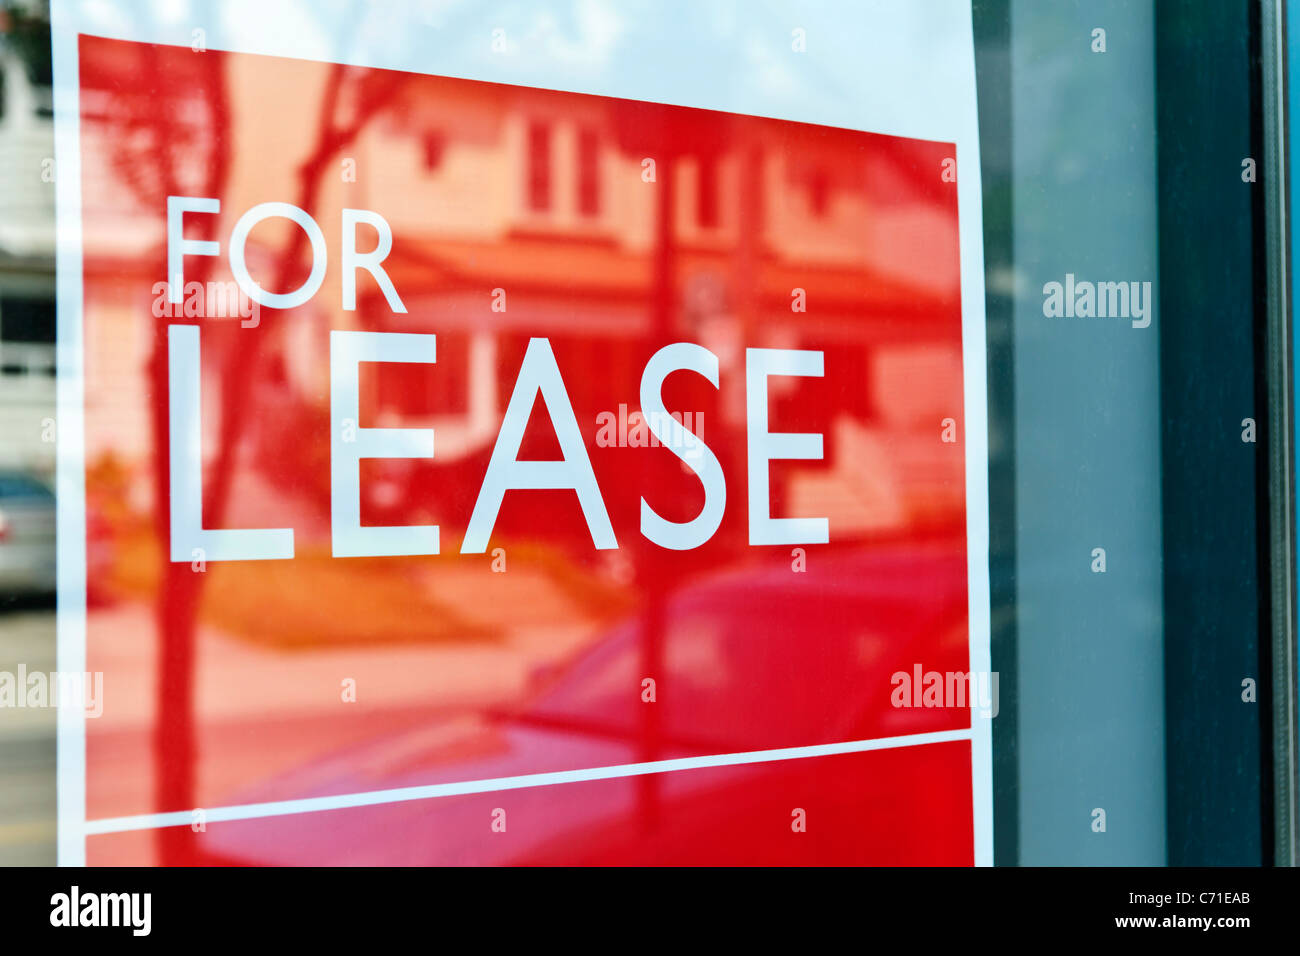 For Lease sign on red in window reflecting street scene - Stock Image